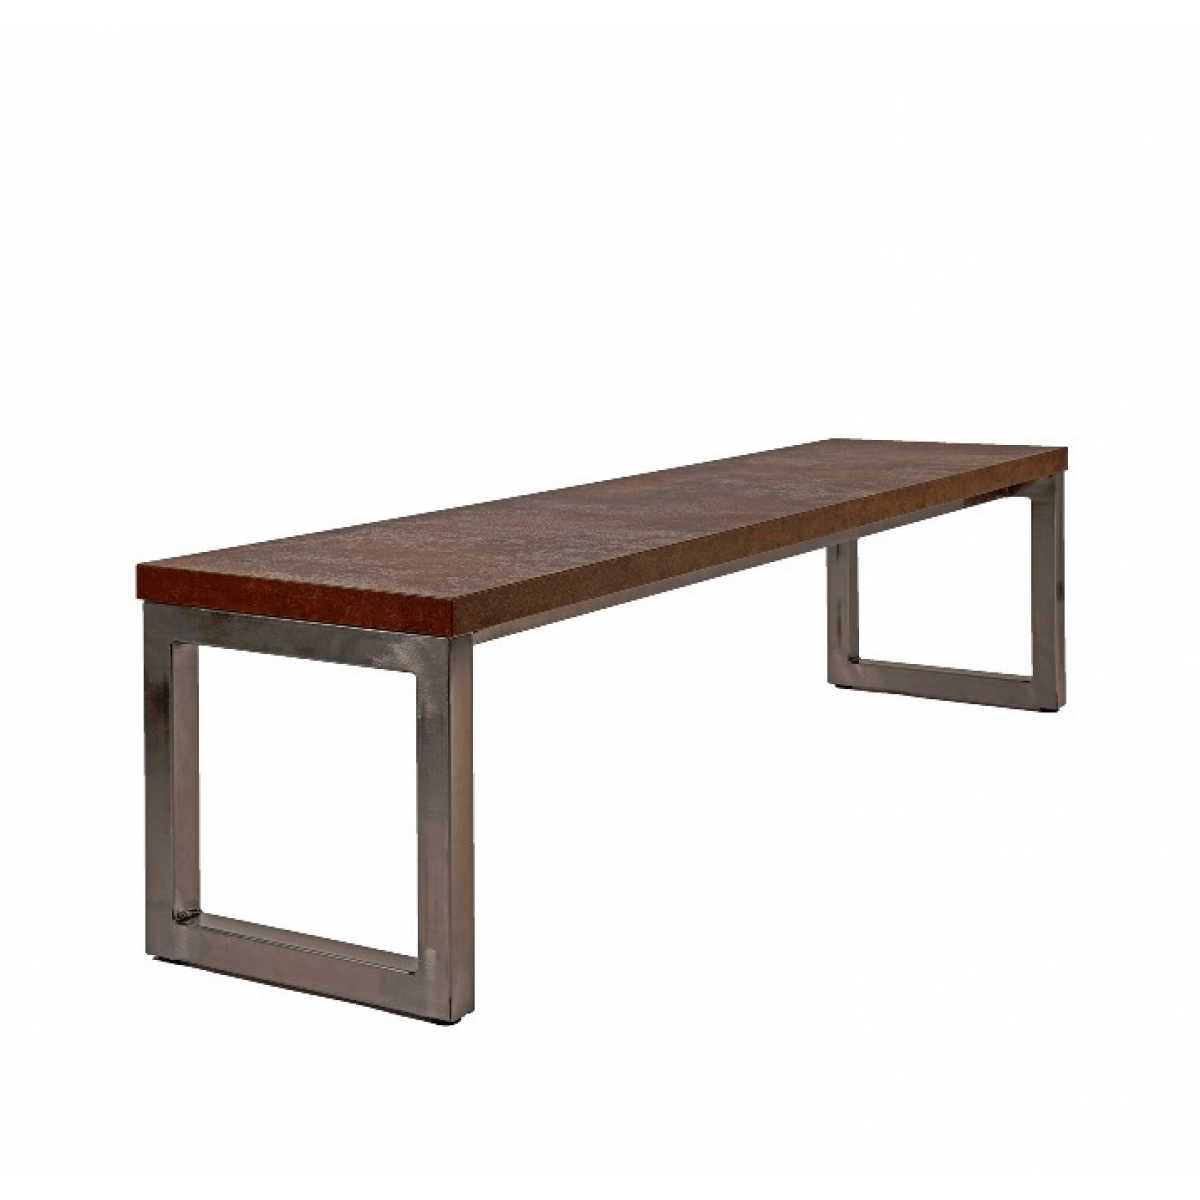 Awe Inspiring Axiom Rustic Industrial Style Canteen Bench Seat Ocoug Best Dining Table And Chair Ideas Images Ocougorg